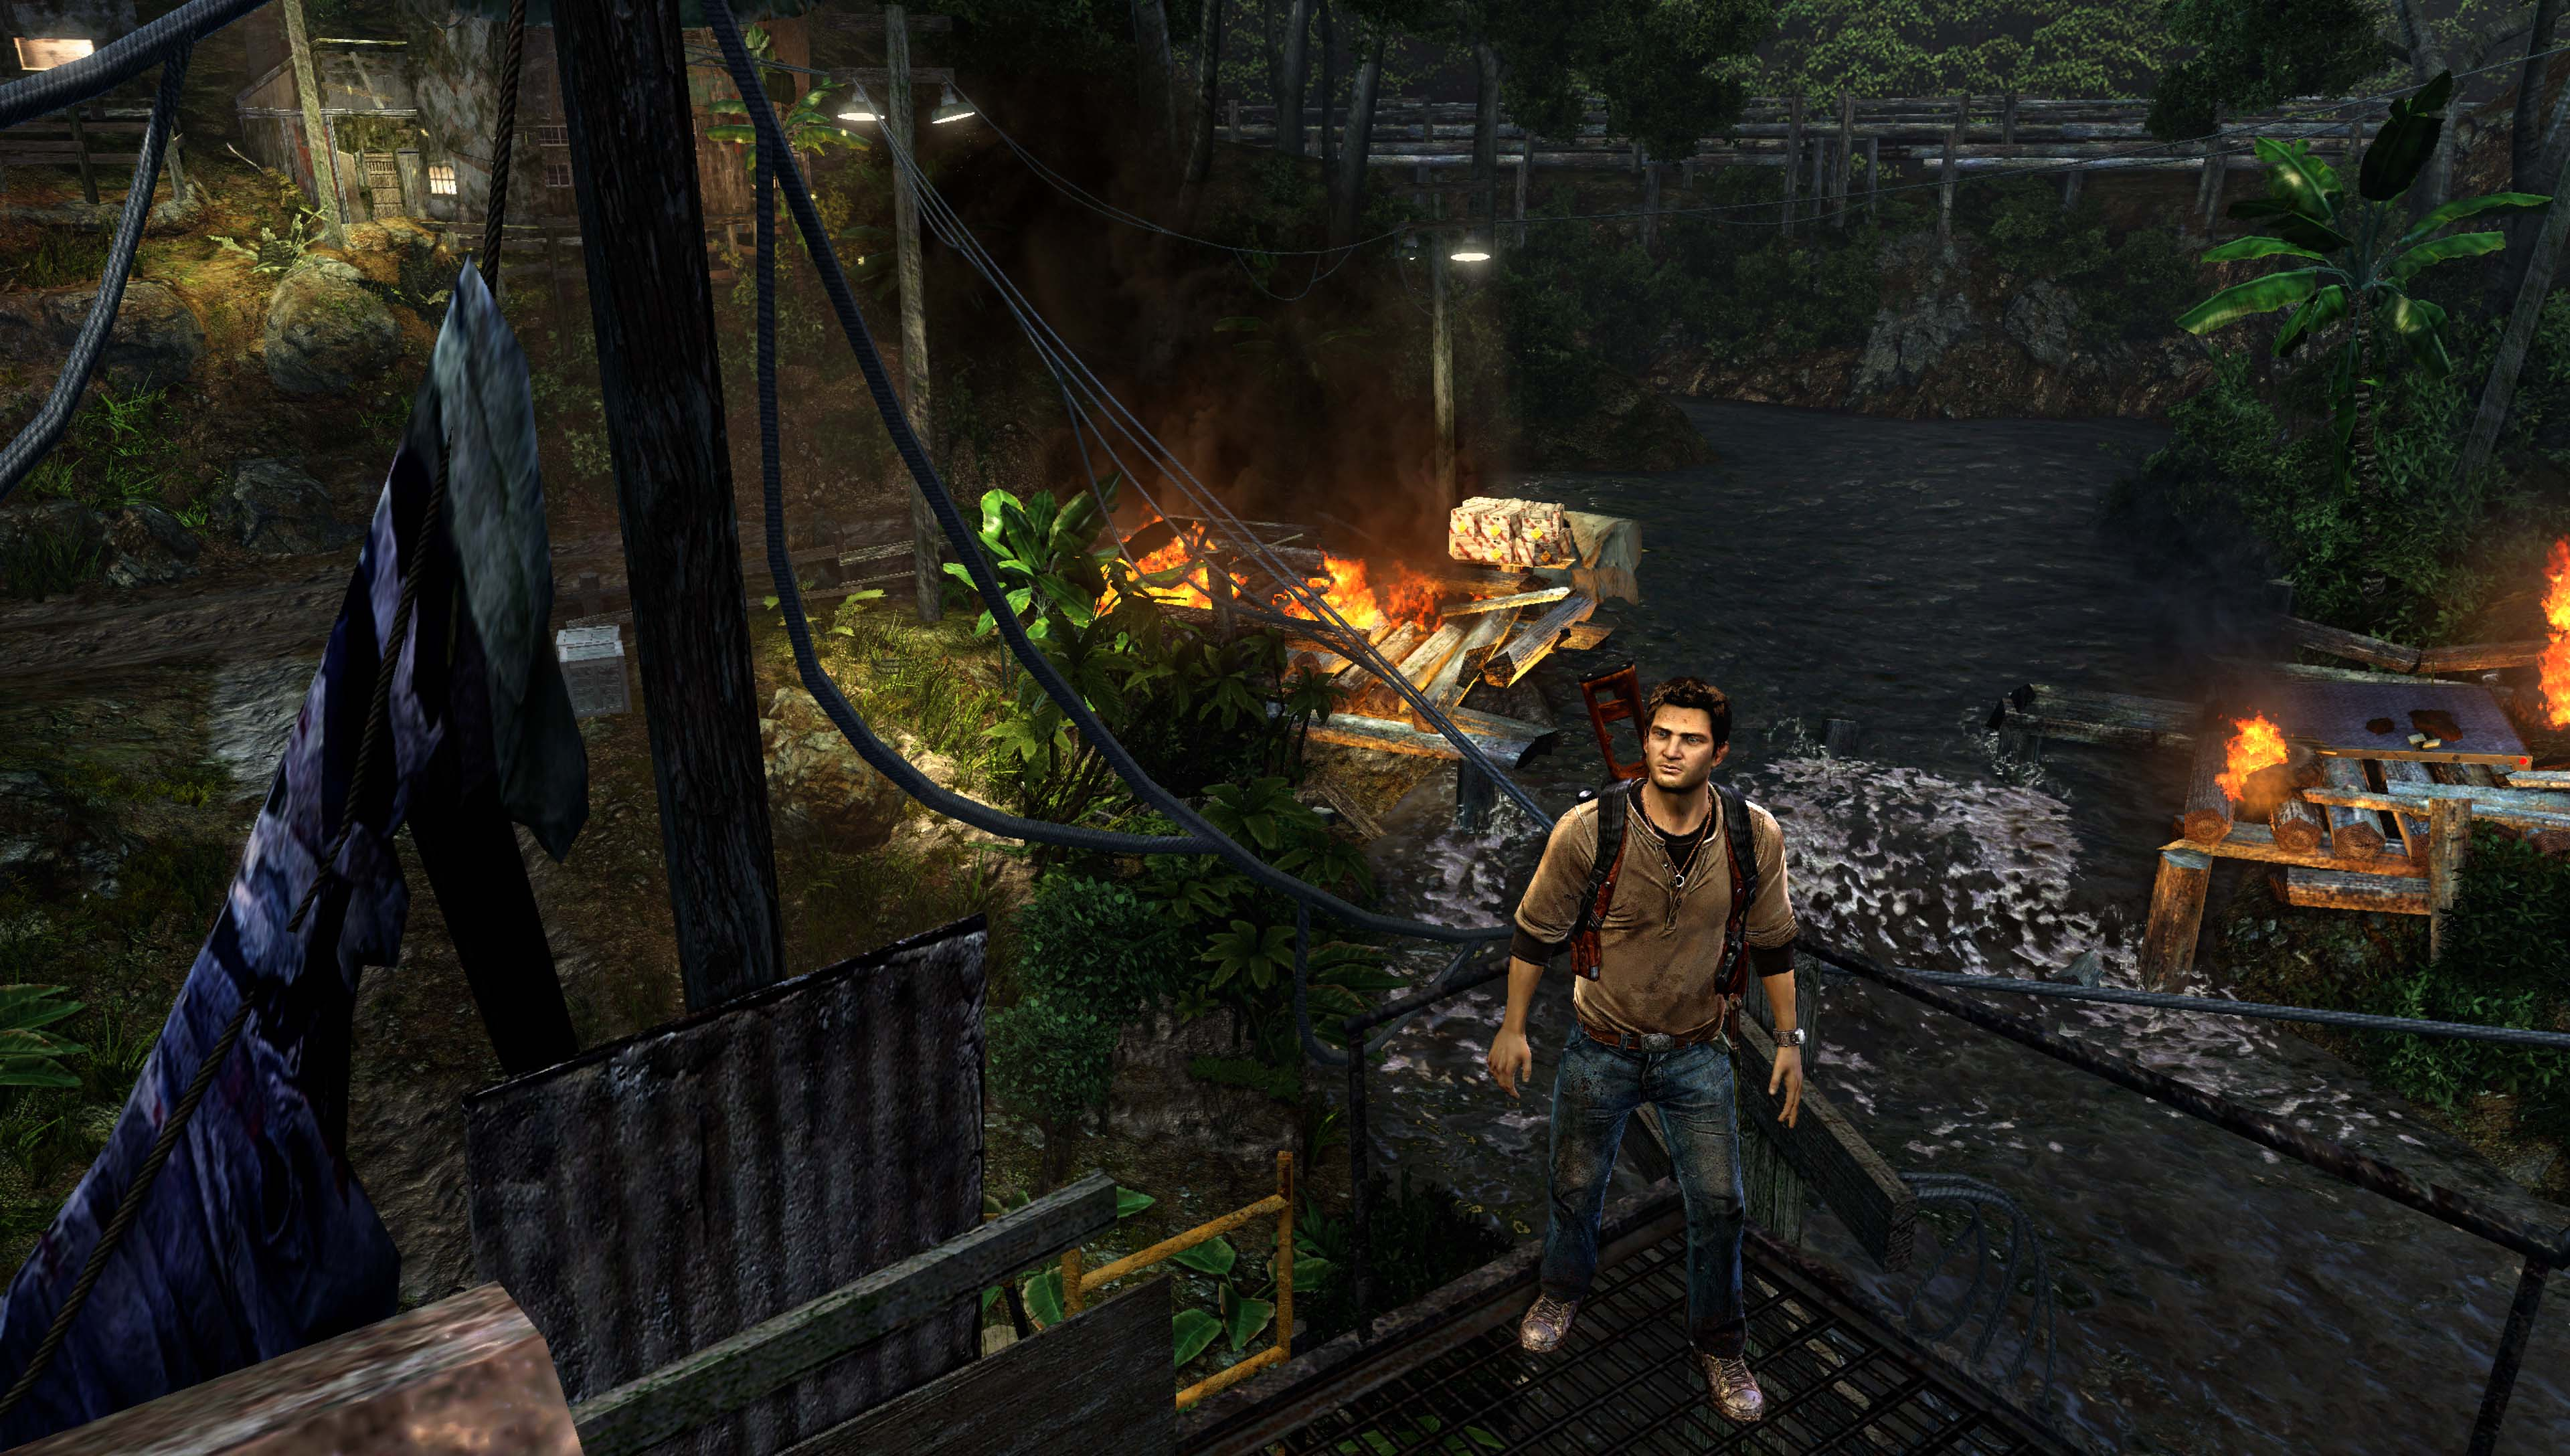 Why is Uncharted: Golden Abyss missing from the series' remastered collection?